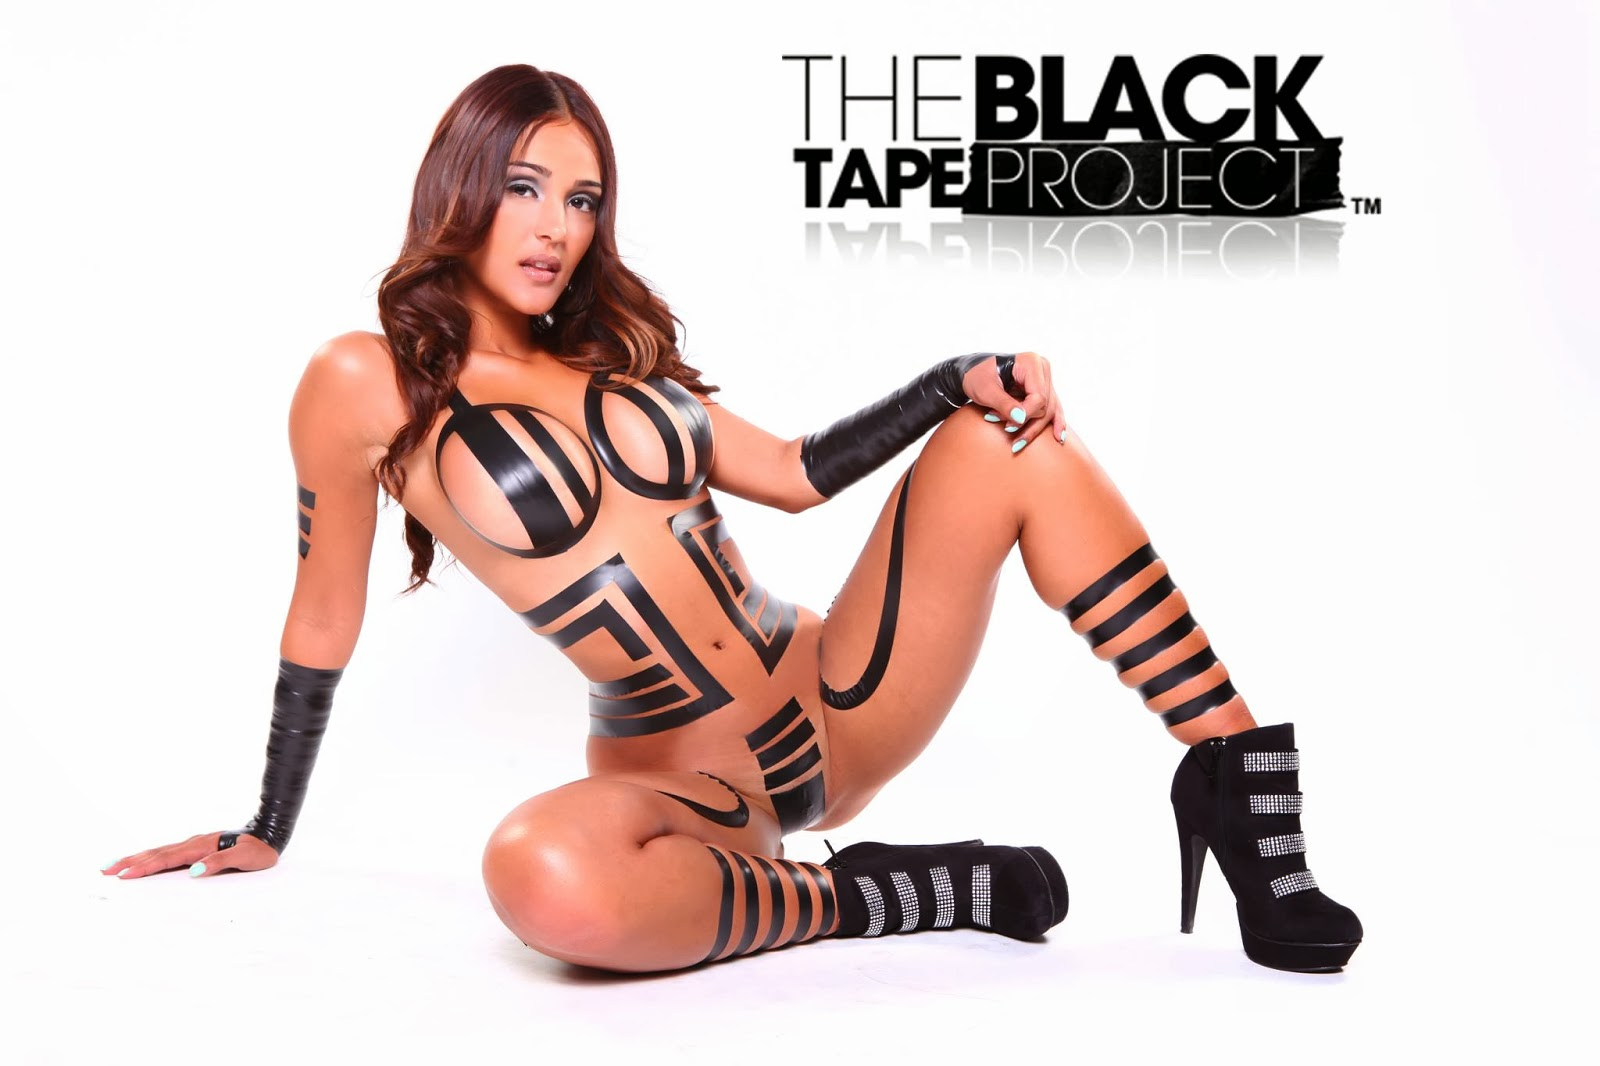 project Black tape